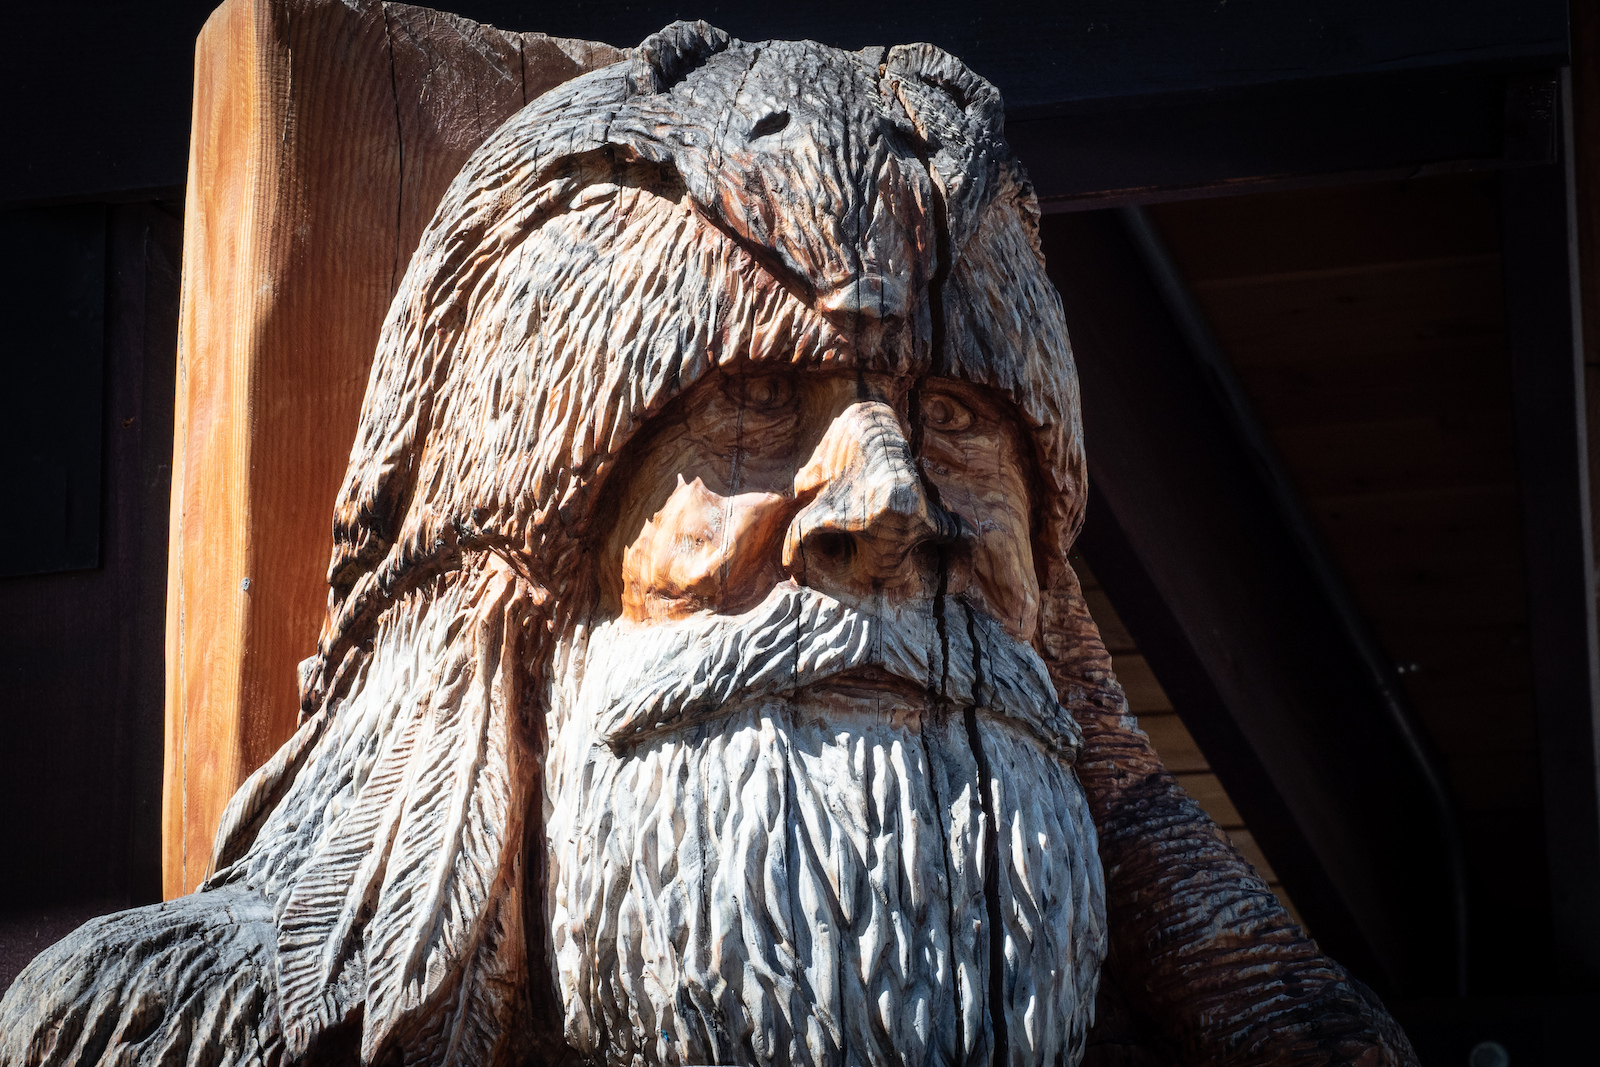 The Griz - a legendary 8 foot tall man raised by bears who can make it snow by shooting his musket into the clouds.